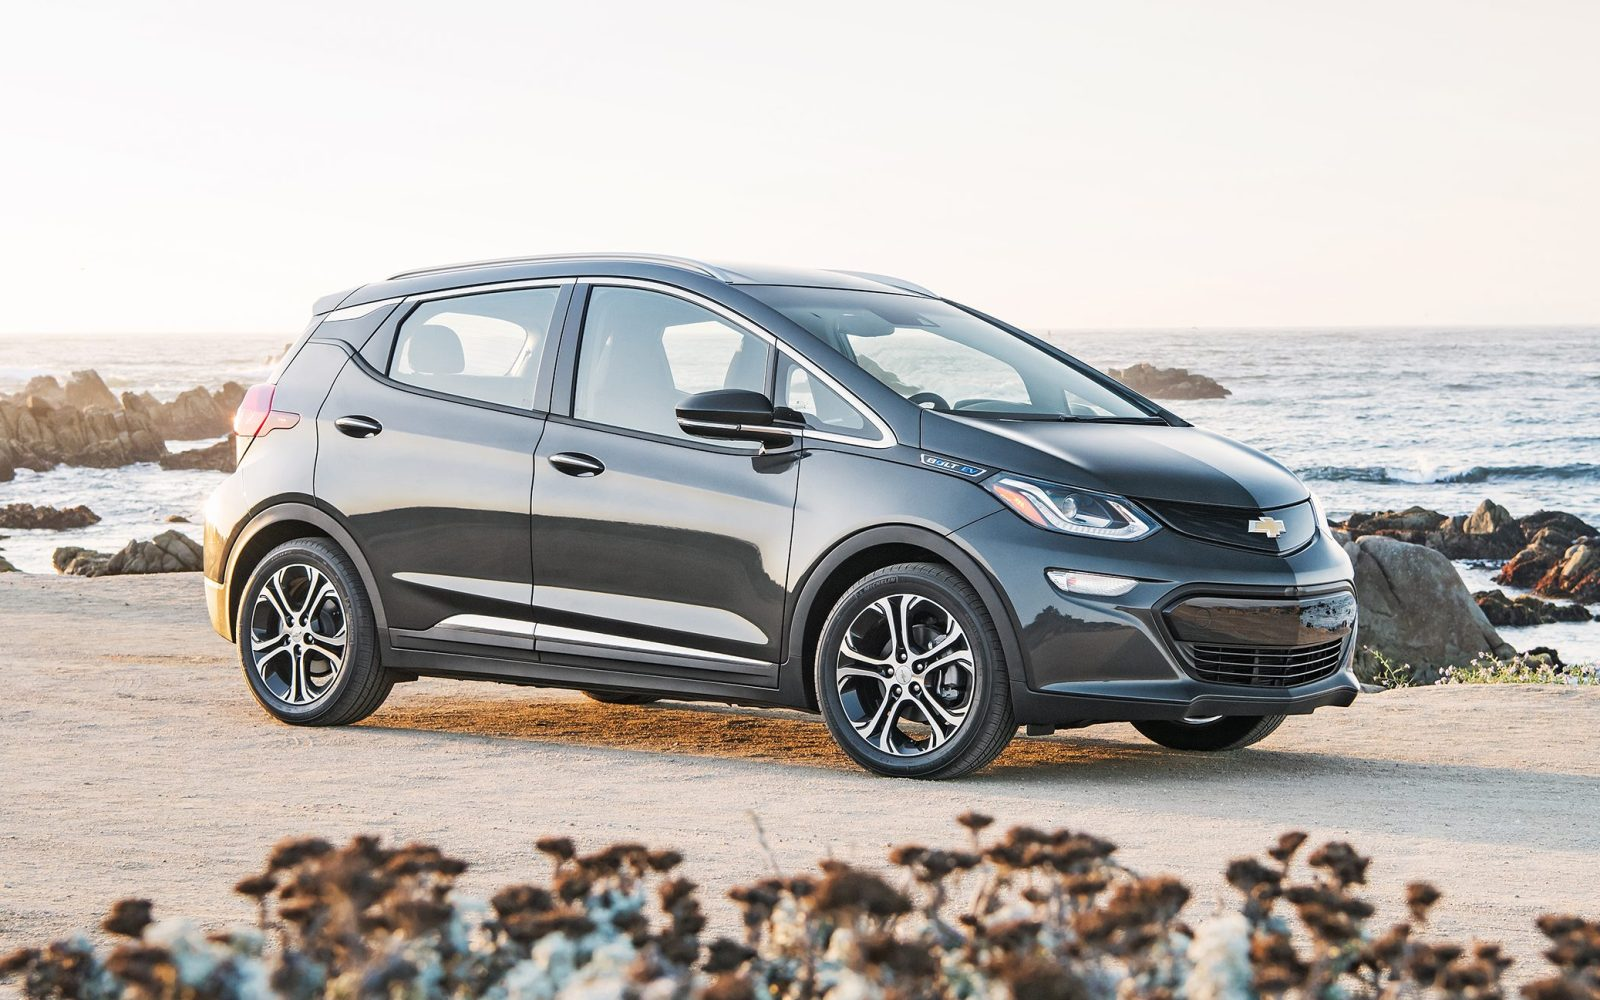 GM warns of potential battery degradation of up to 40% for